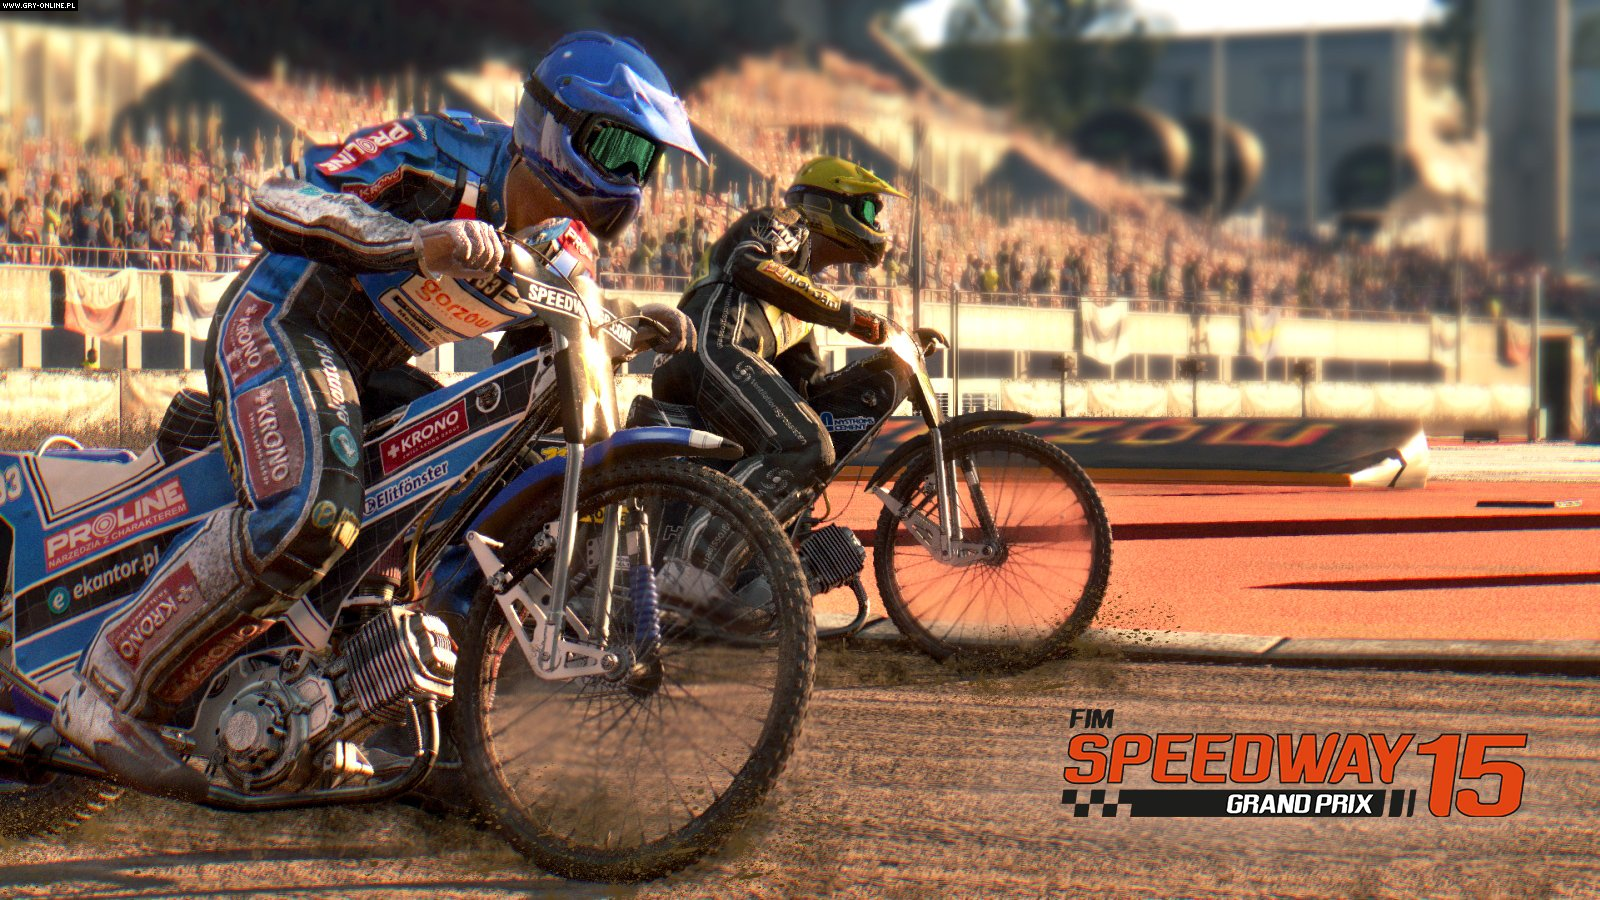 FIM Speedway Grand Prix 15 PC Gry Screen 9/10, Techland, Techland Publishing